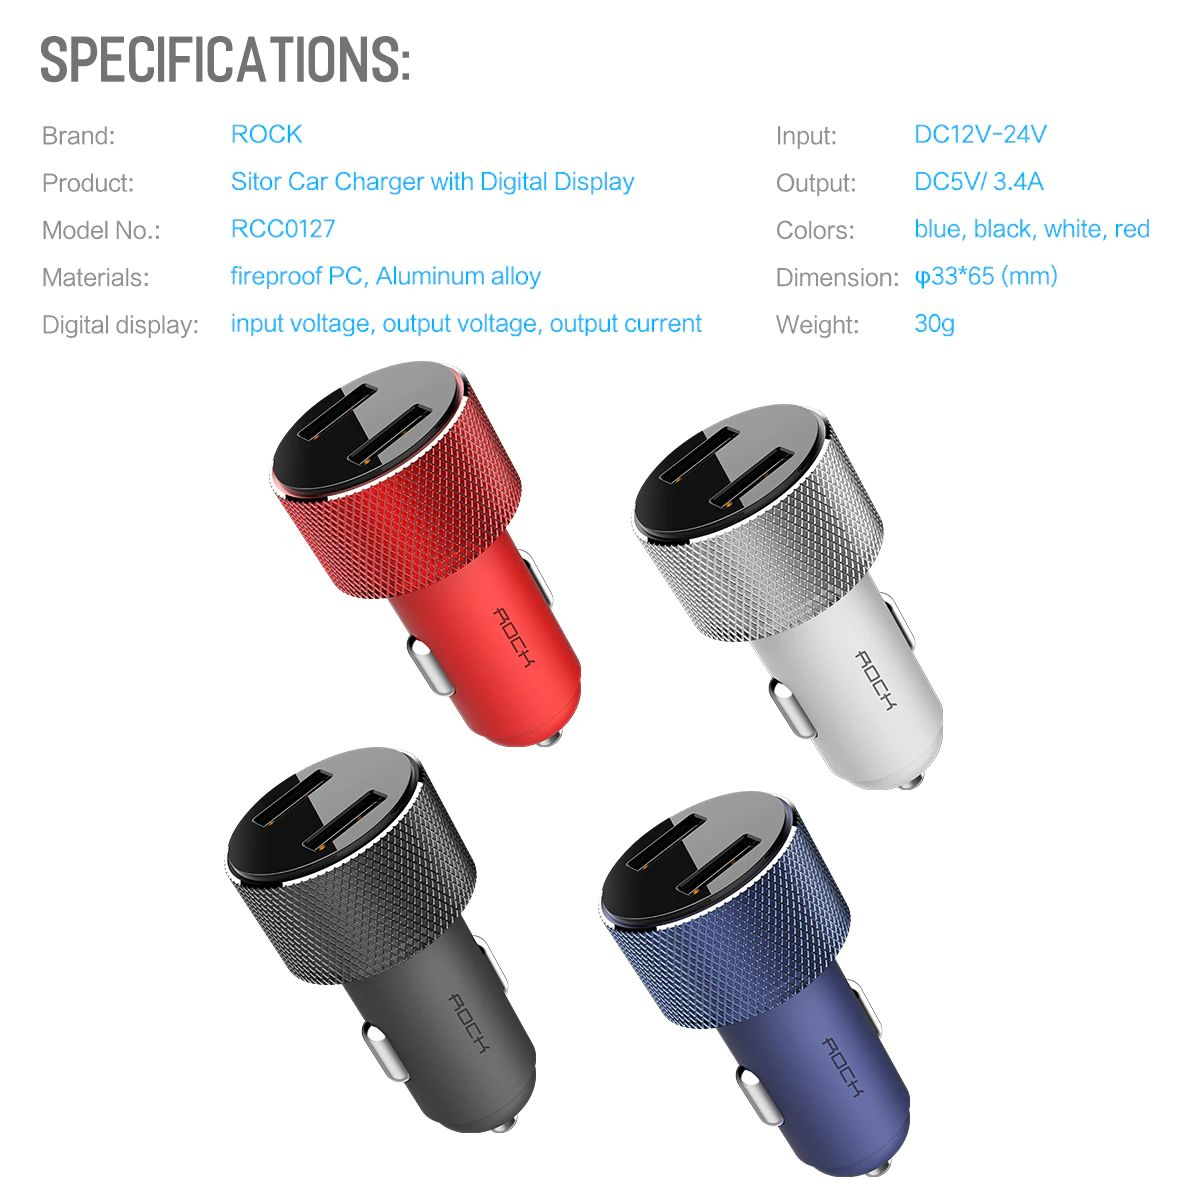 Rock Sitor Car Charger With Digital Display (19)